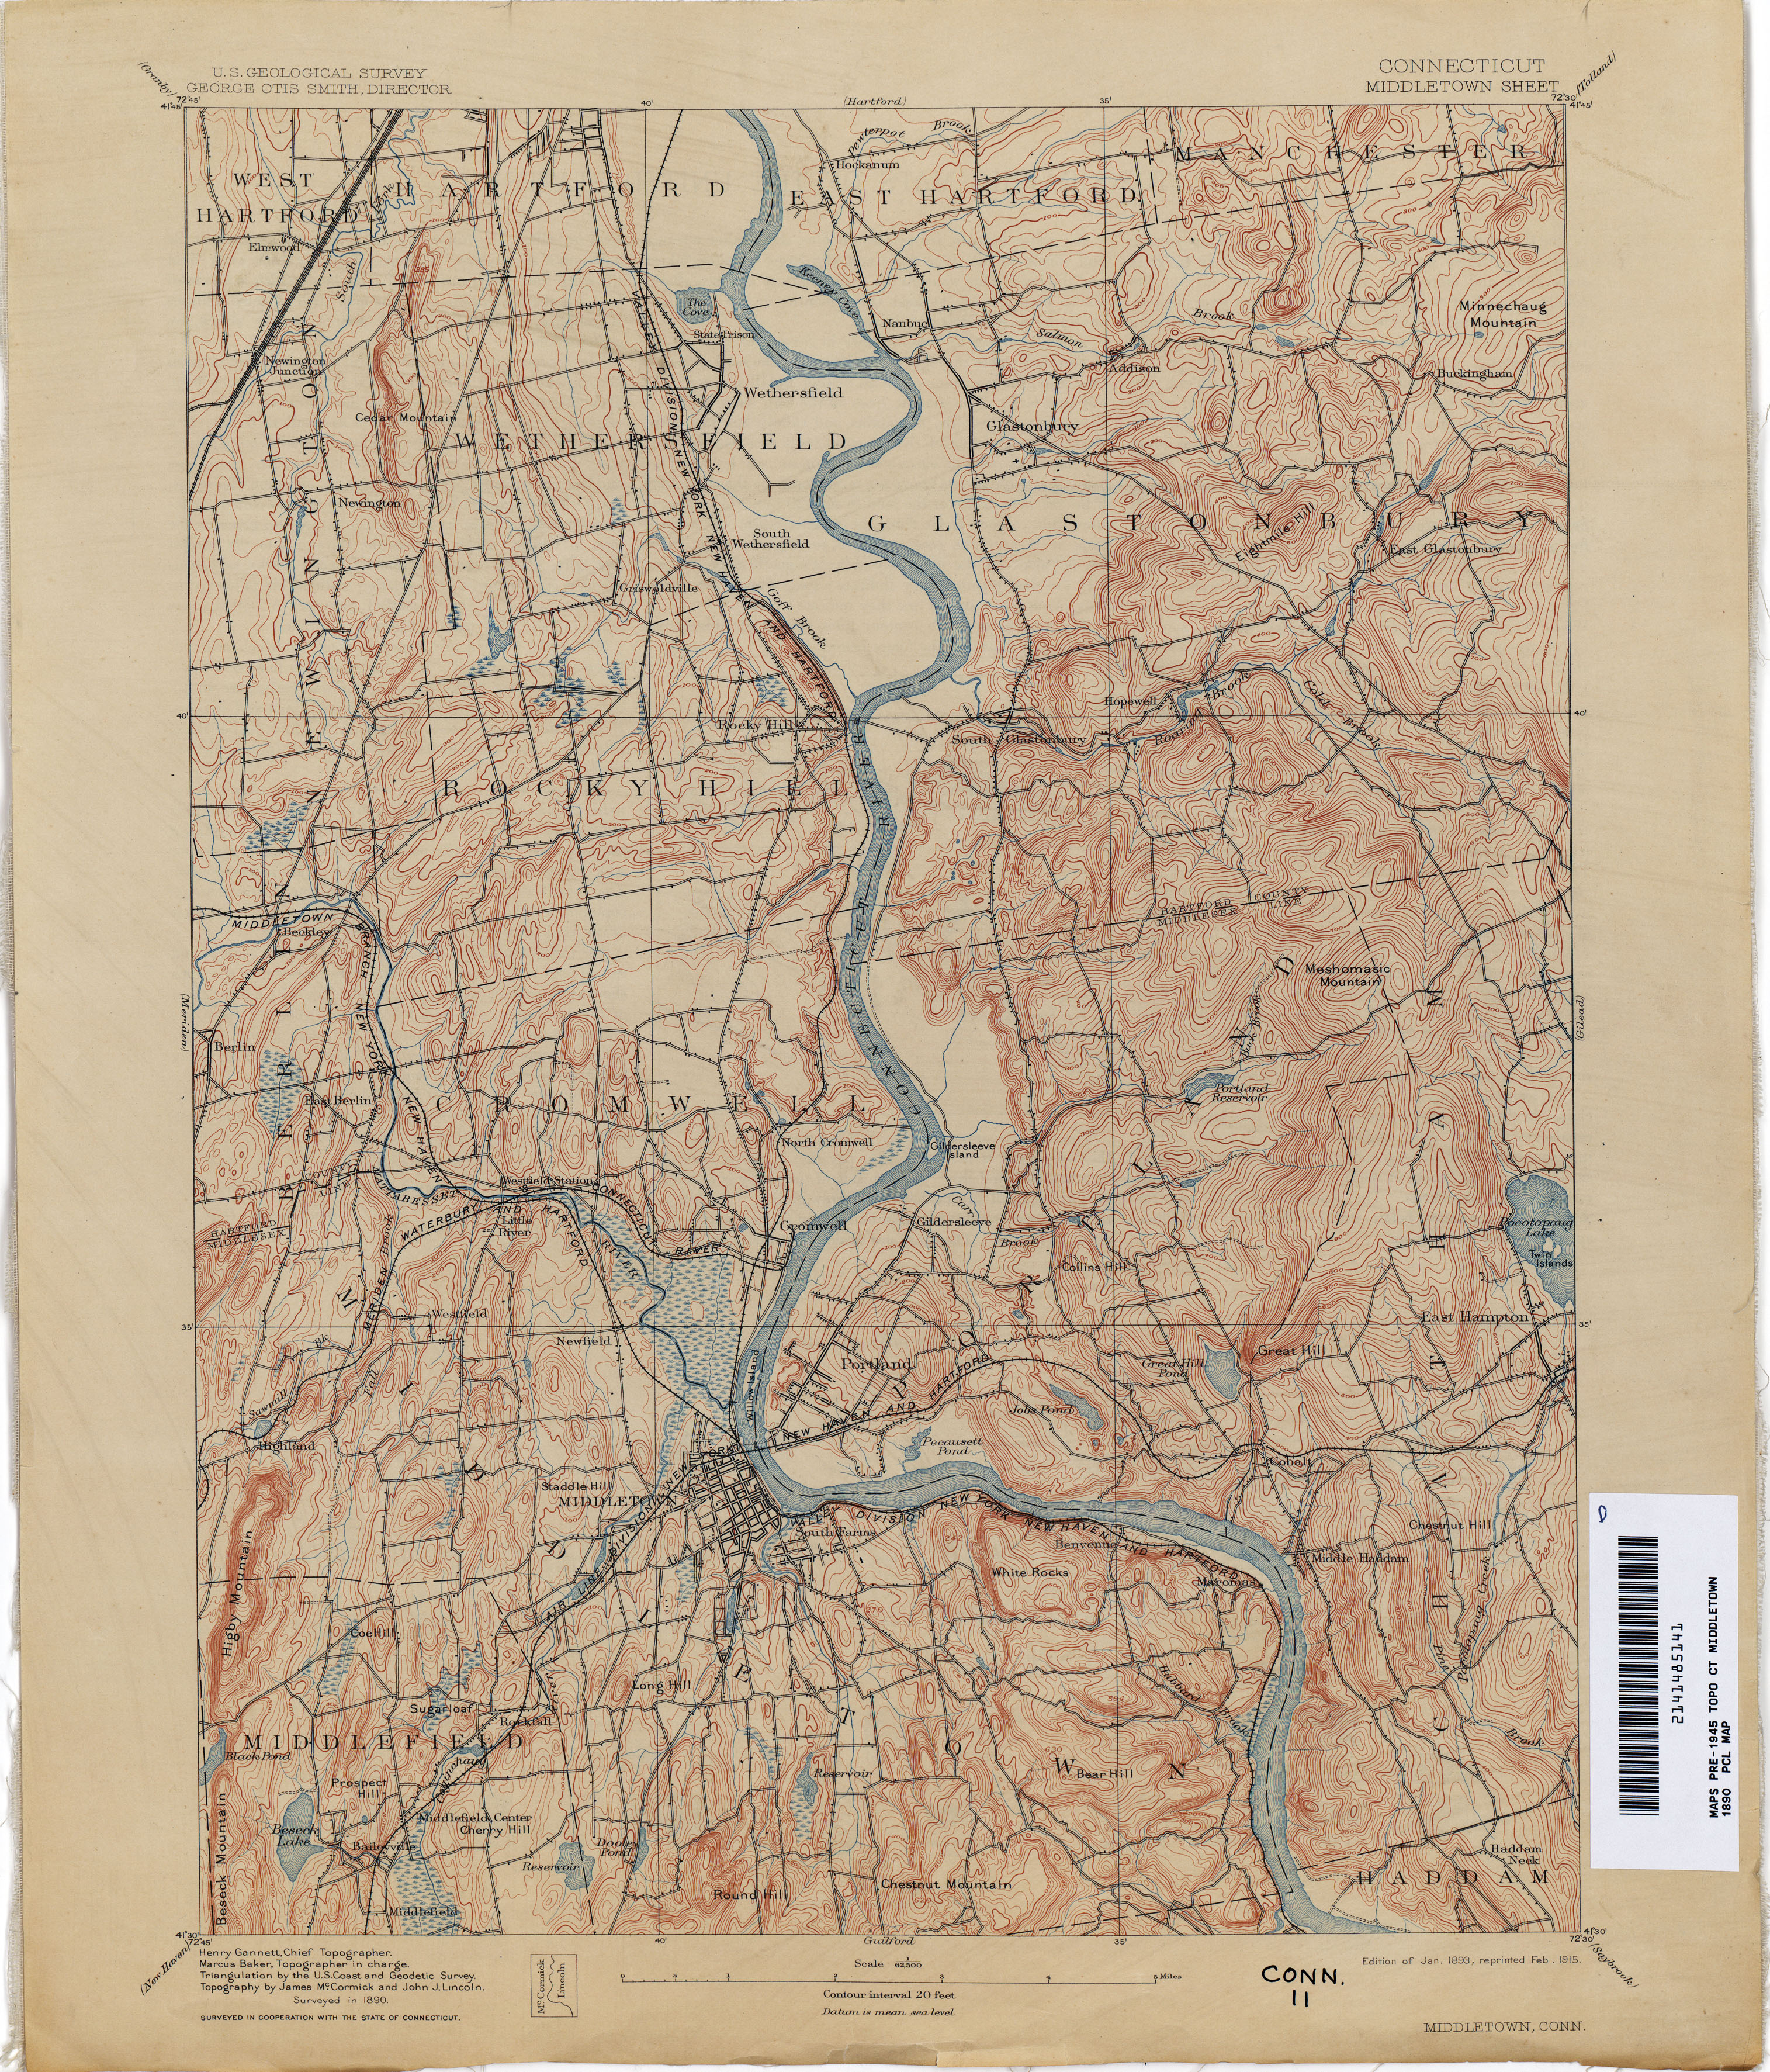 connecticut historical topographic maps